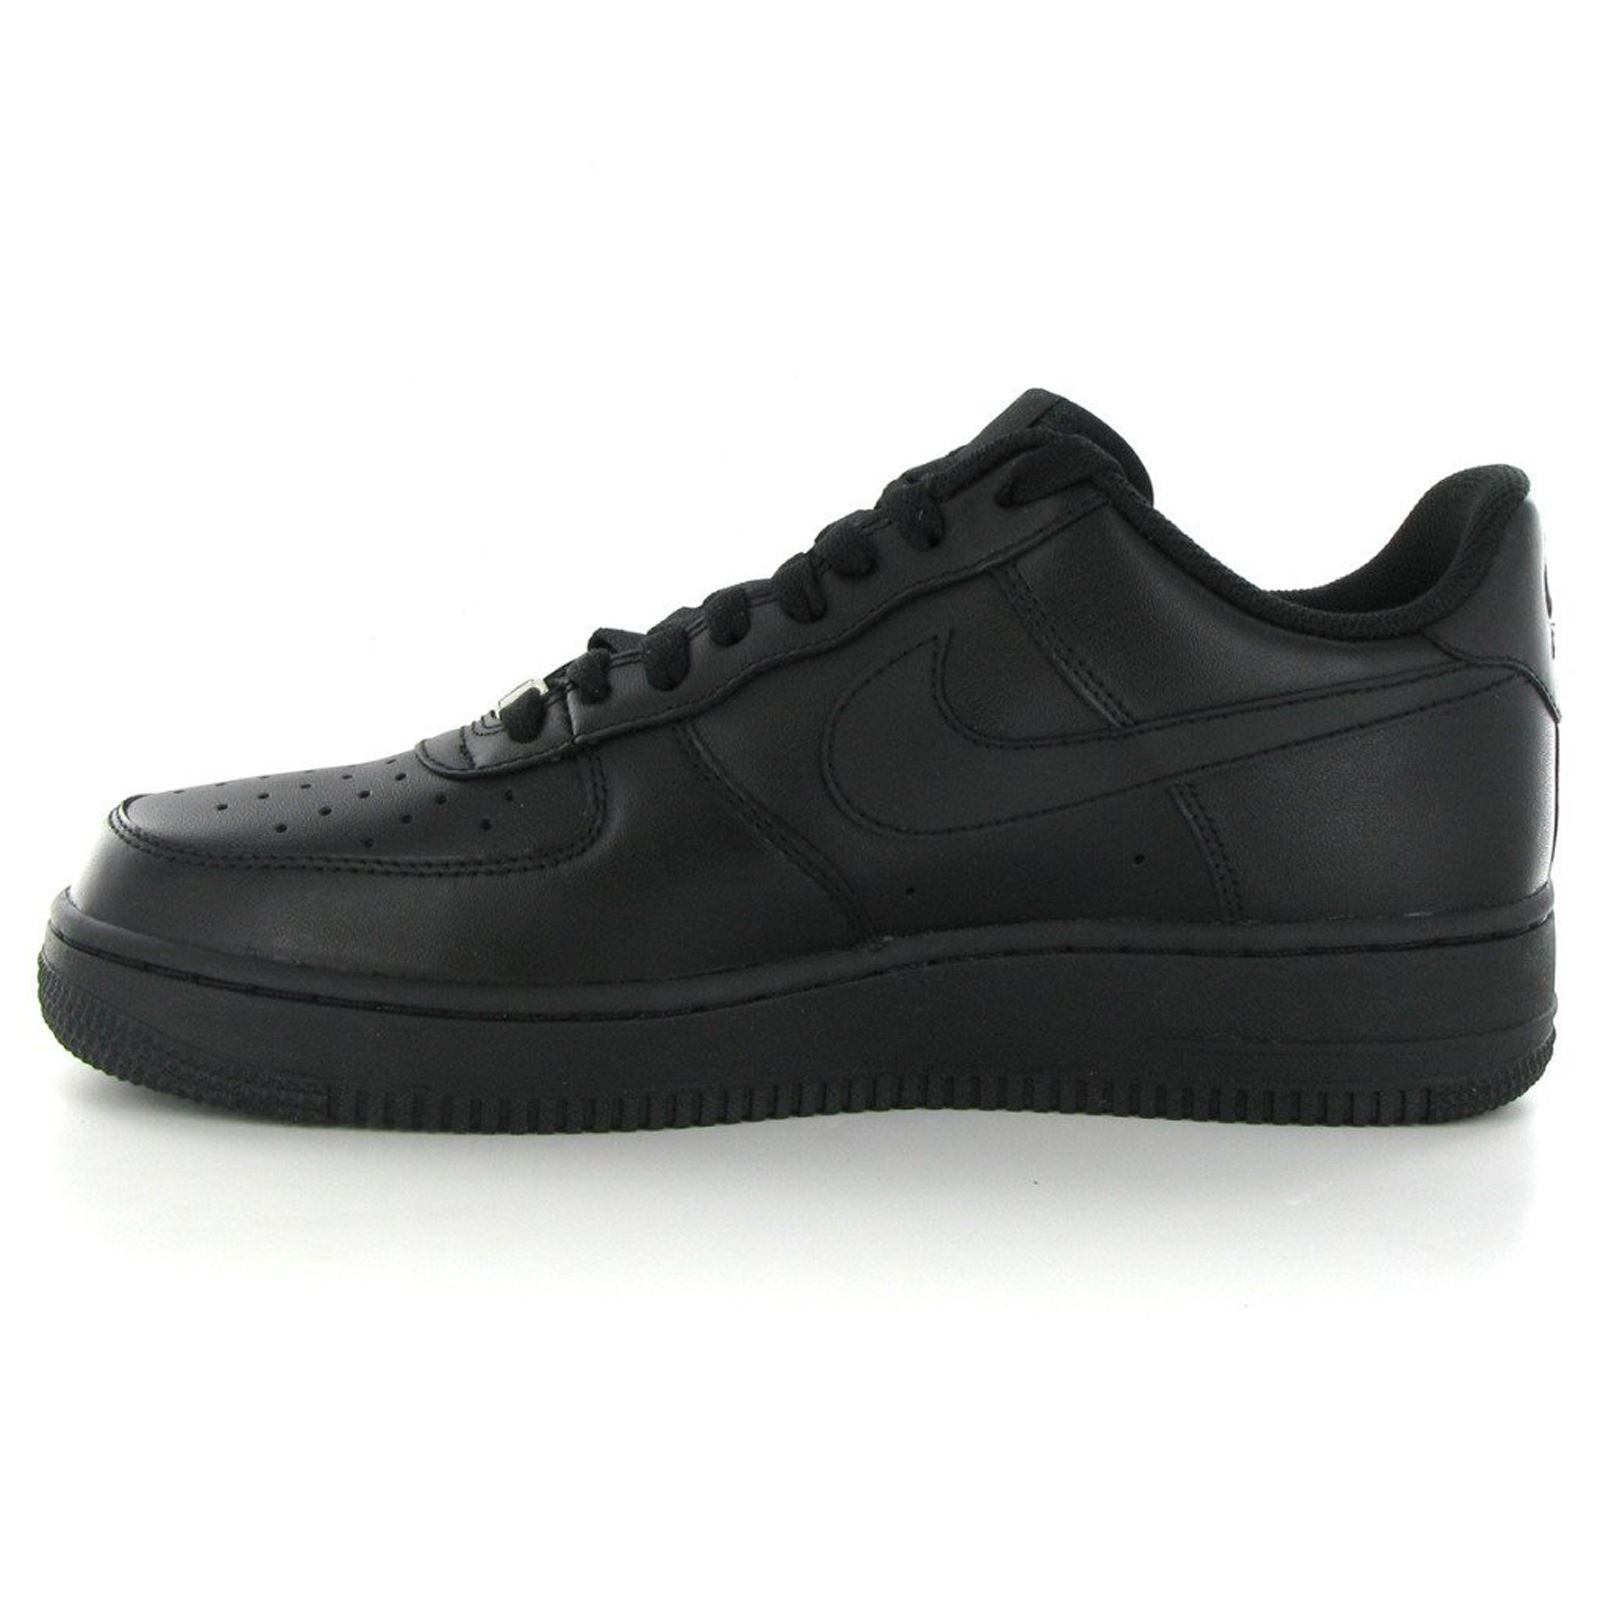 500c225ff16 Nike Air Force 1 Low Leather Mens Trainers